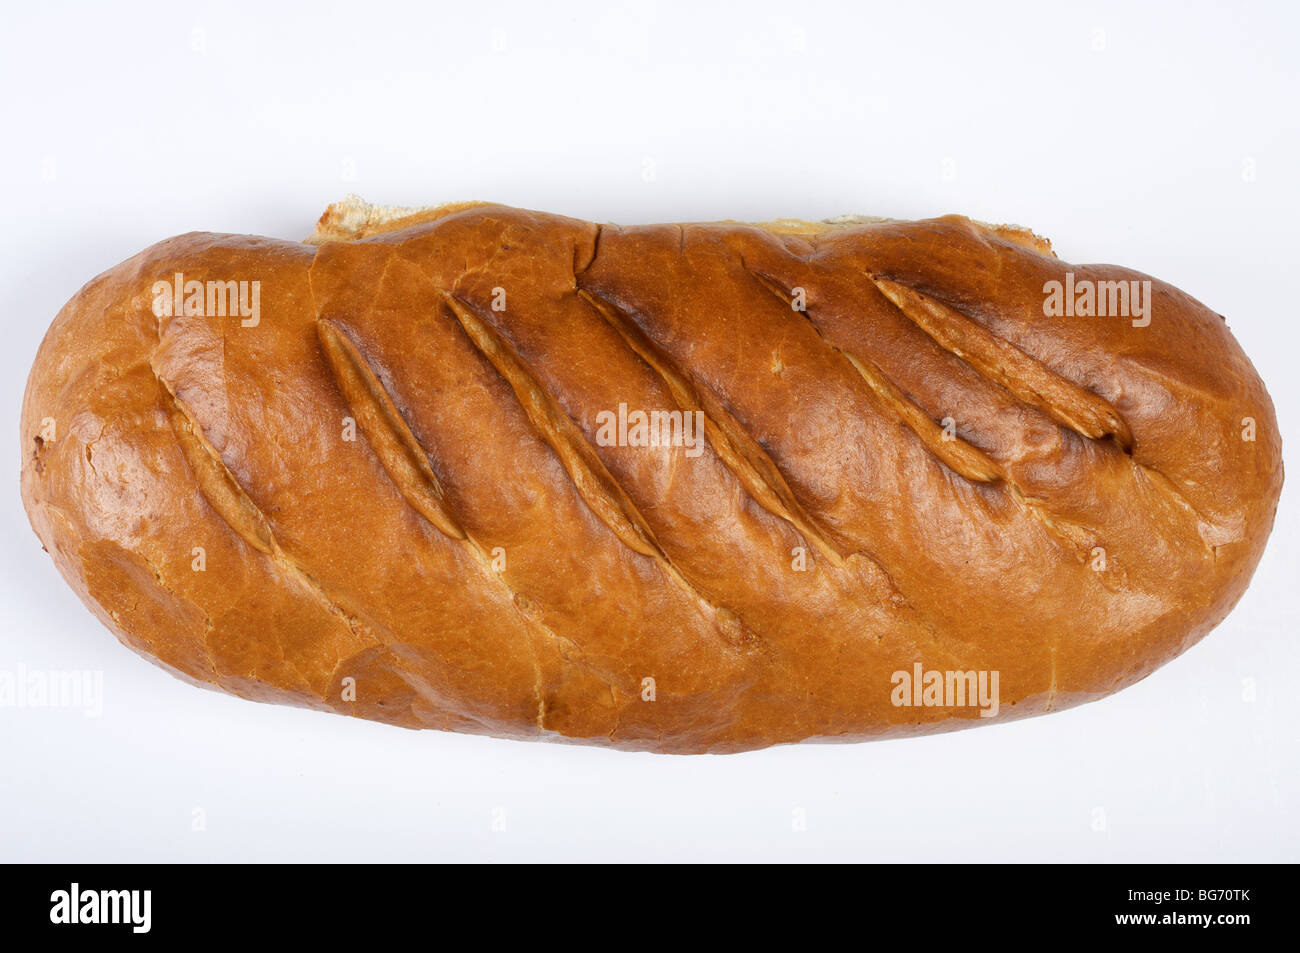 Giant Bloomer loaf of bread - Stock Image